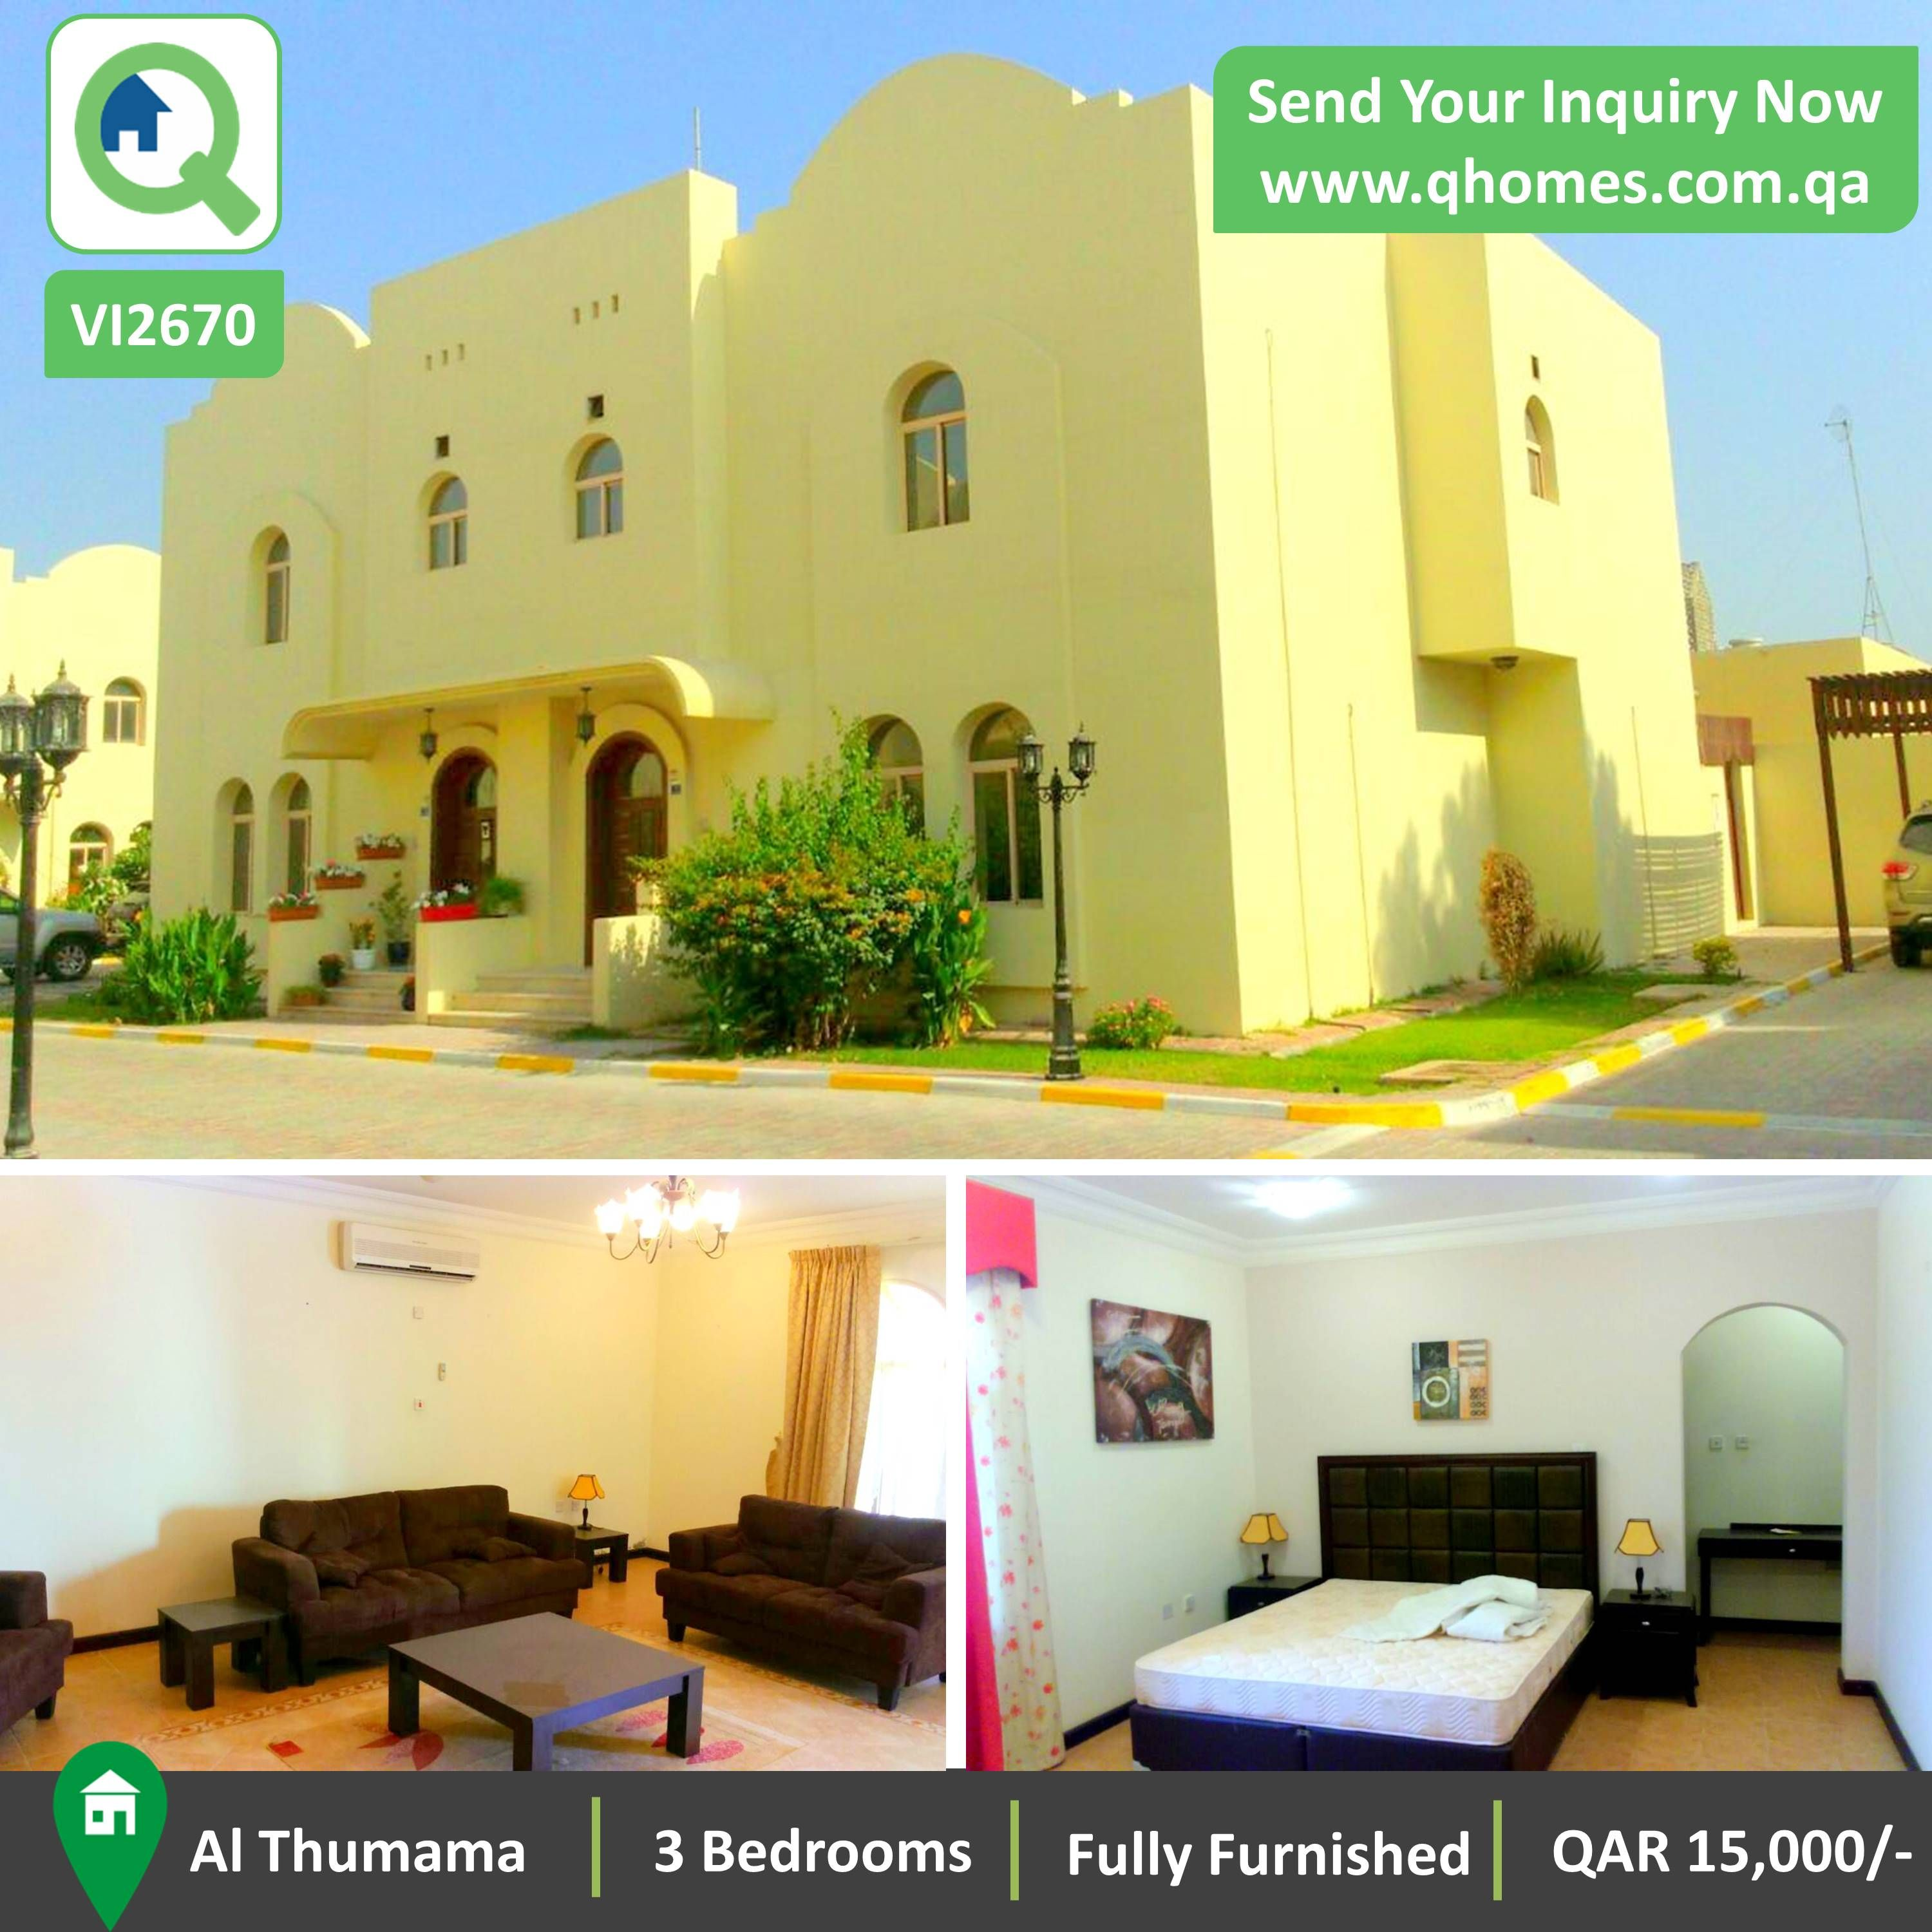 Villa For Rent In Qatar: Fully Furnished 3 Bedrooms Villa